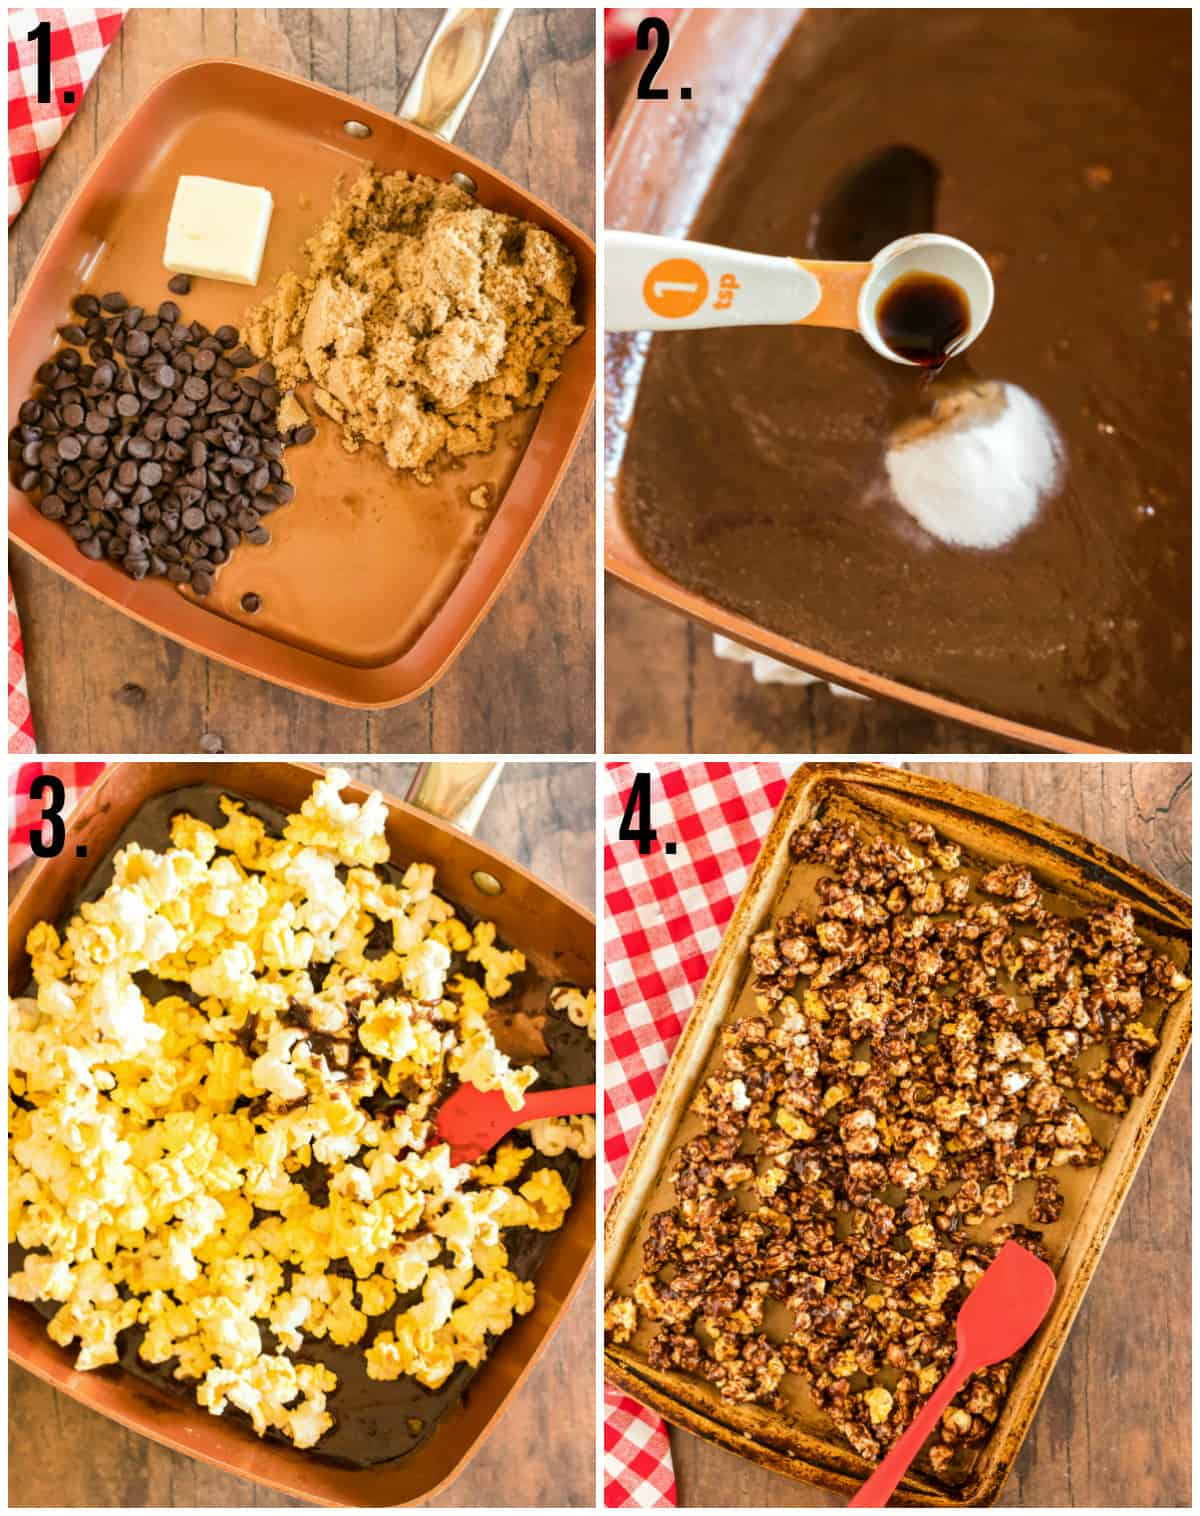 Step by step photos on how to make Chocolate Popcorn